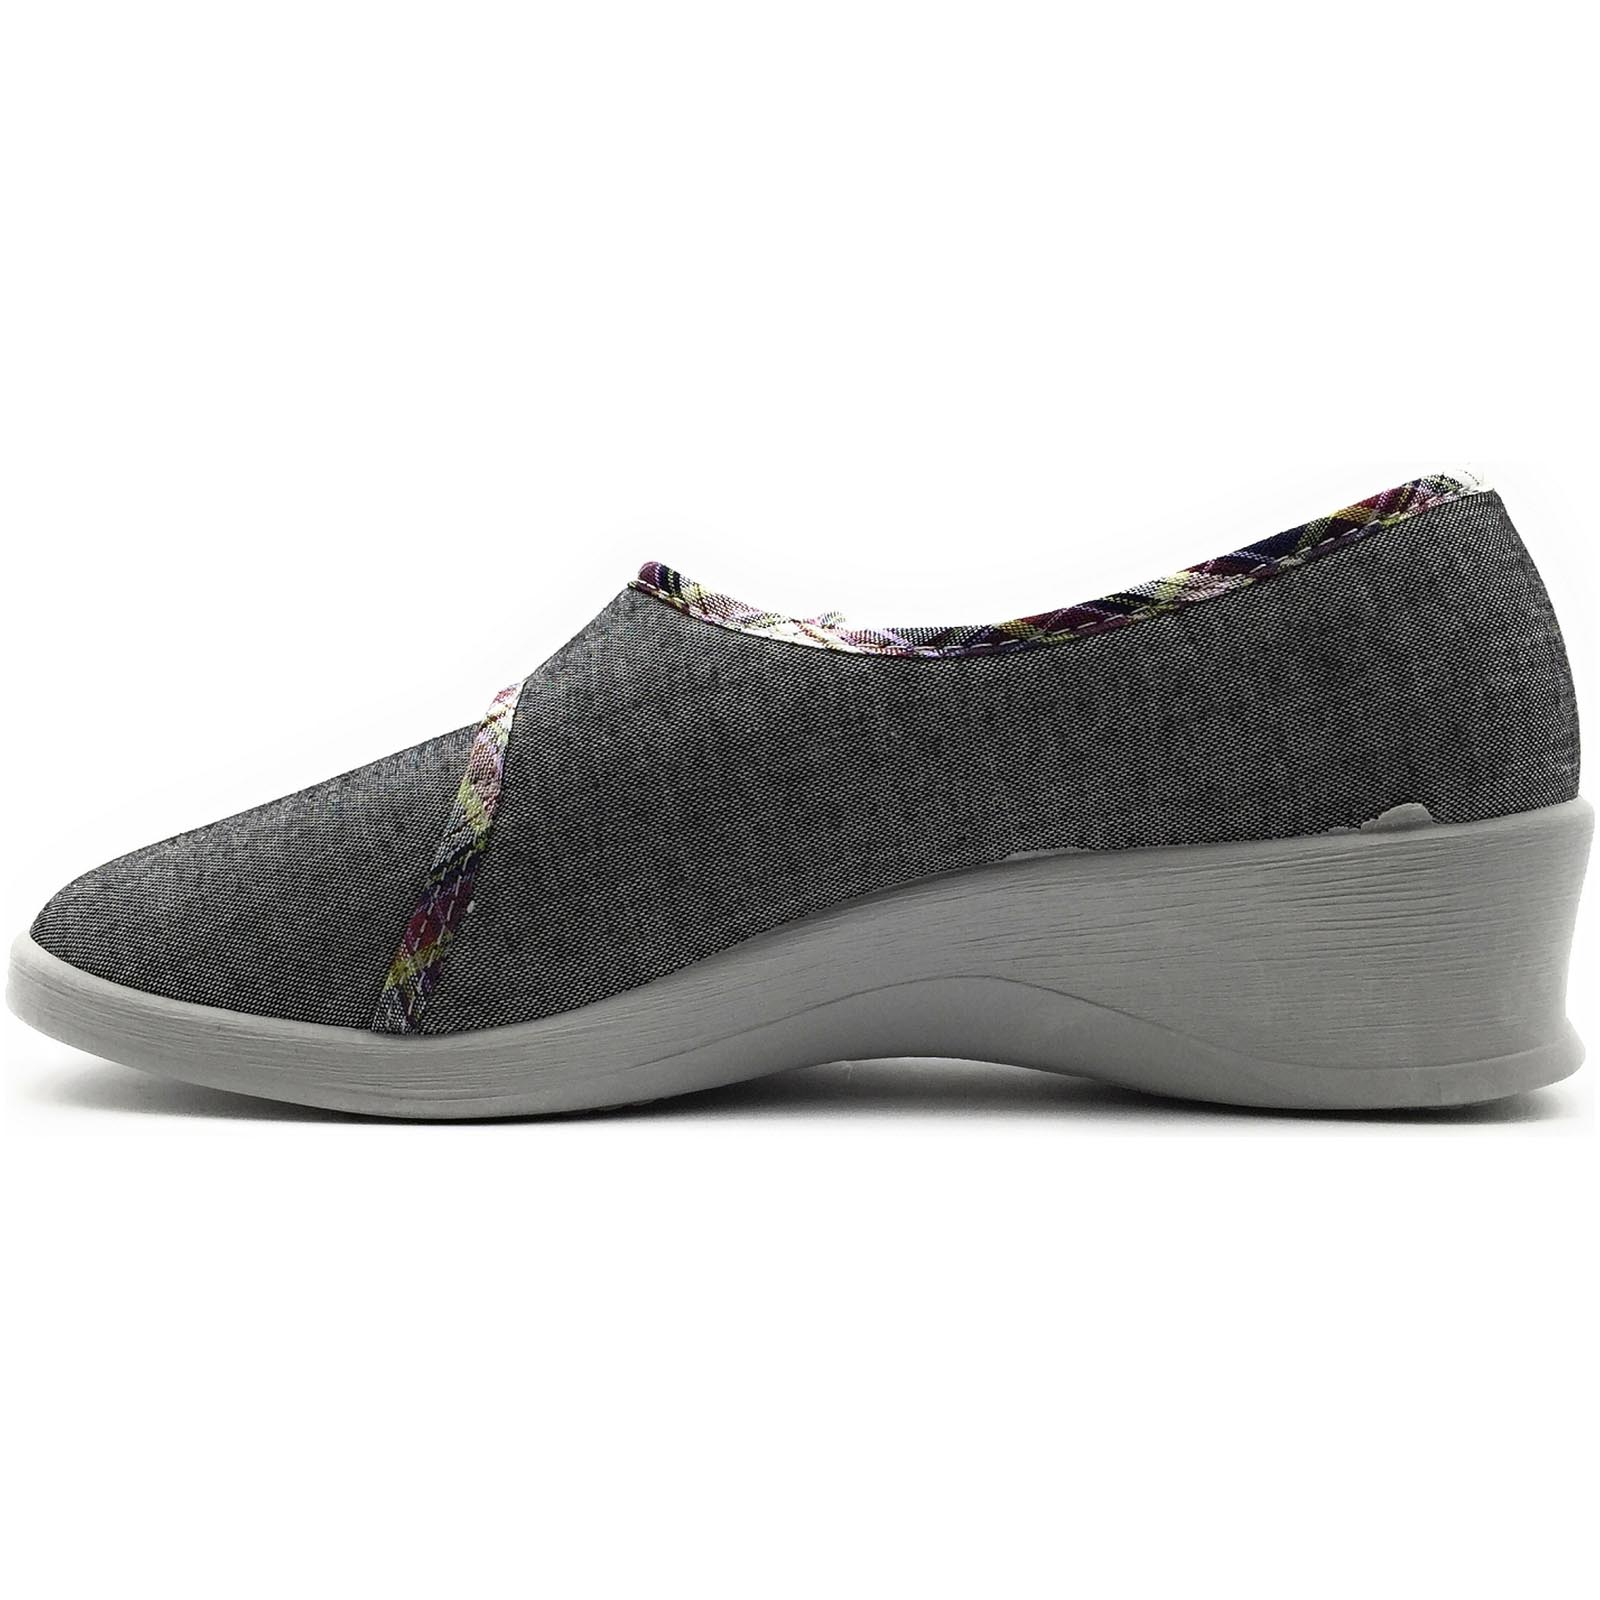 Fargeot chaussons unesco gris1134601_6